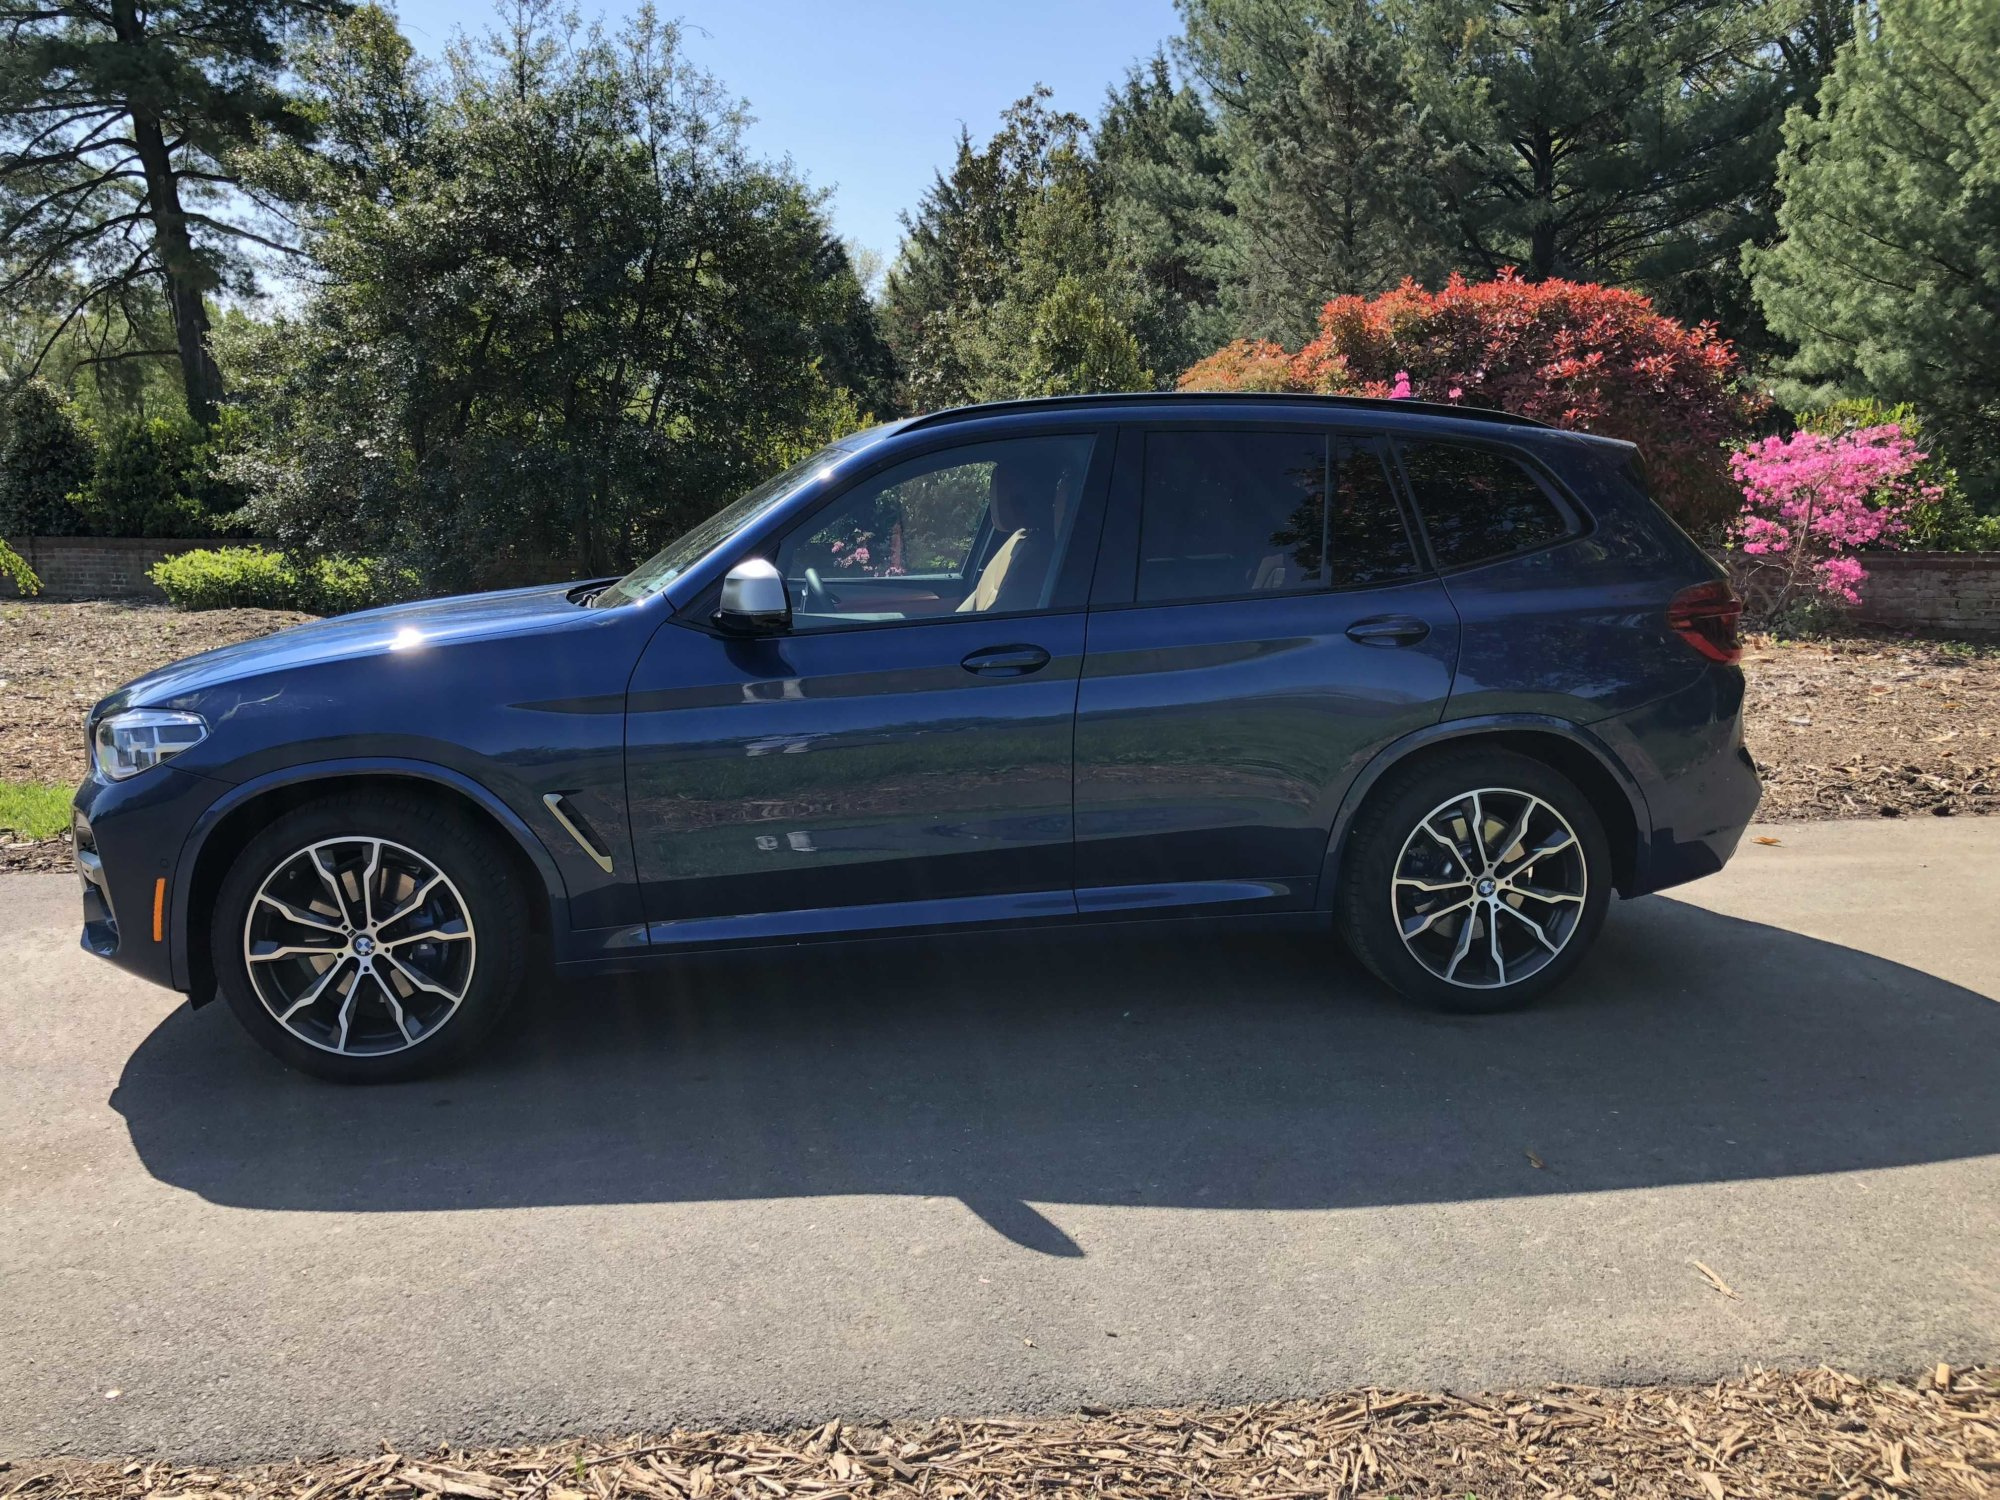 With more space and improved technology, the new X3 combines luxury with a fun-to-drive package. (WTOP/Mike Parris)